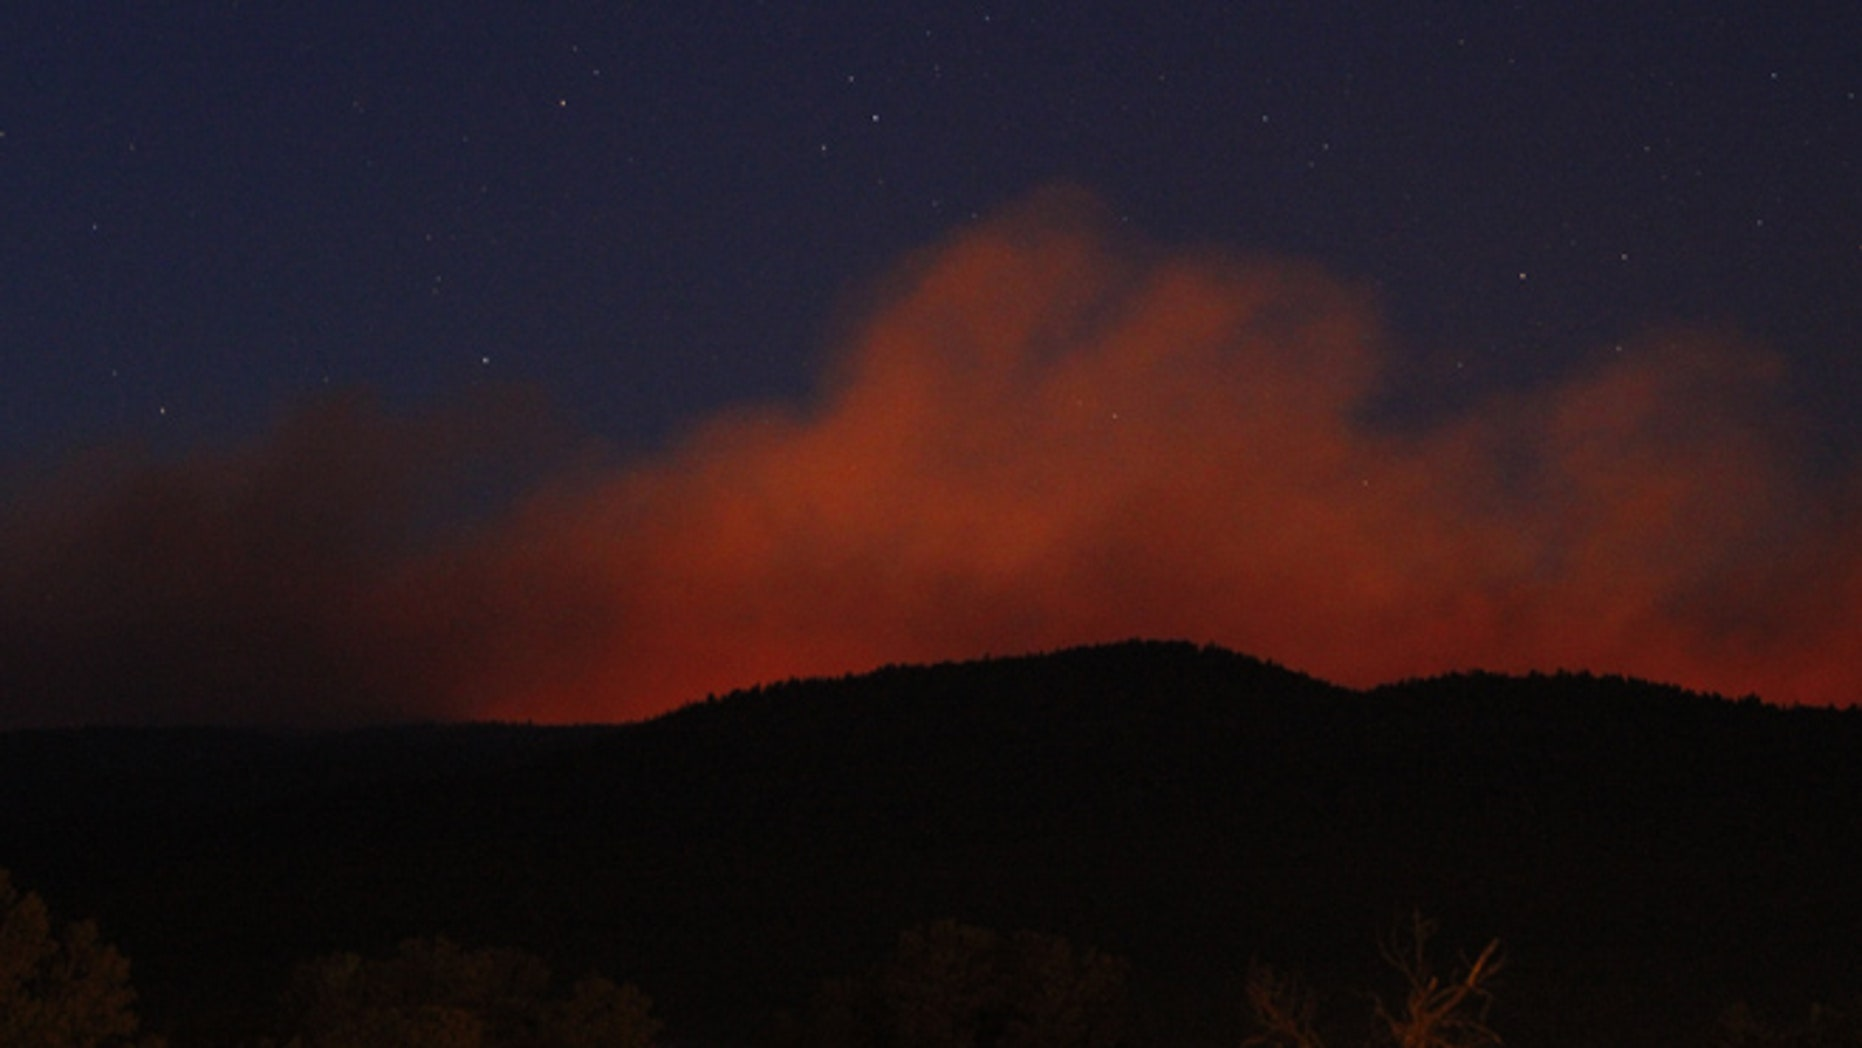 May 31, 2013: A view of the Tres Lagunas Fire from Pecos, N.M. Officials said the fire in New Mexico's Santa Fe National Forest more than doubled in size by Friday night and was still totally uncontained.